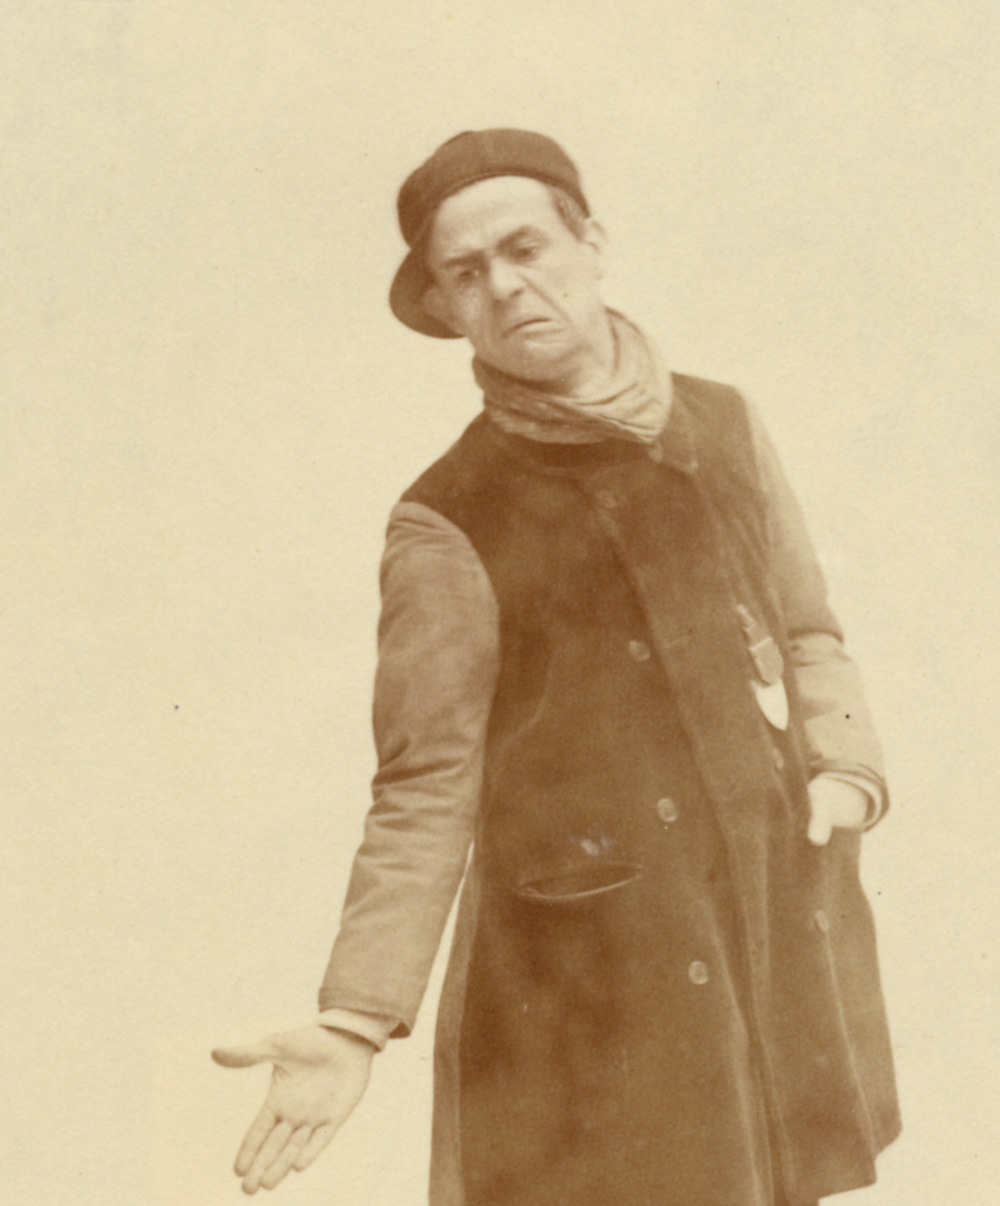 Gus Elen - from the Victoria and Albert collection